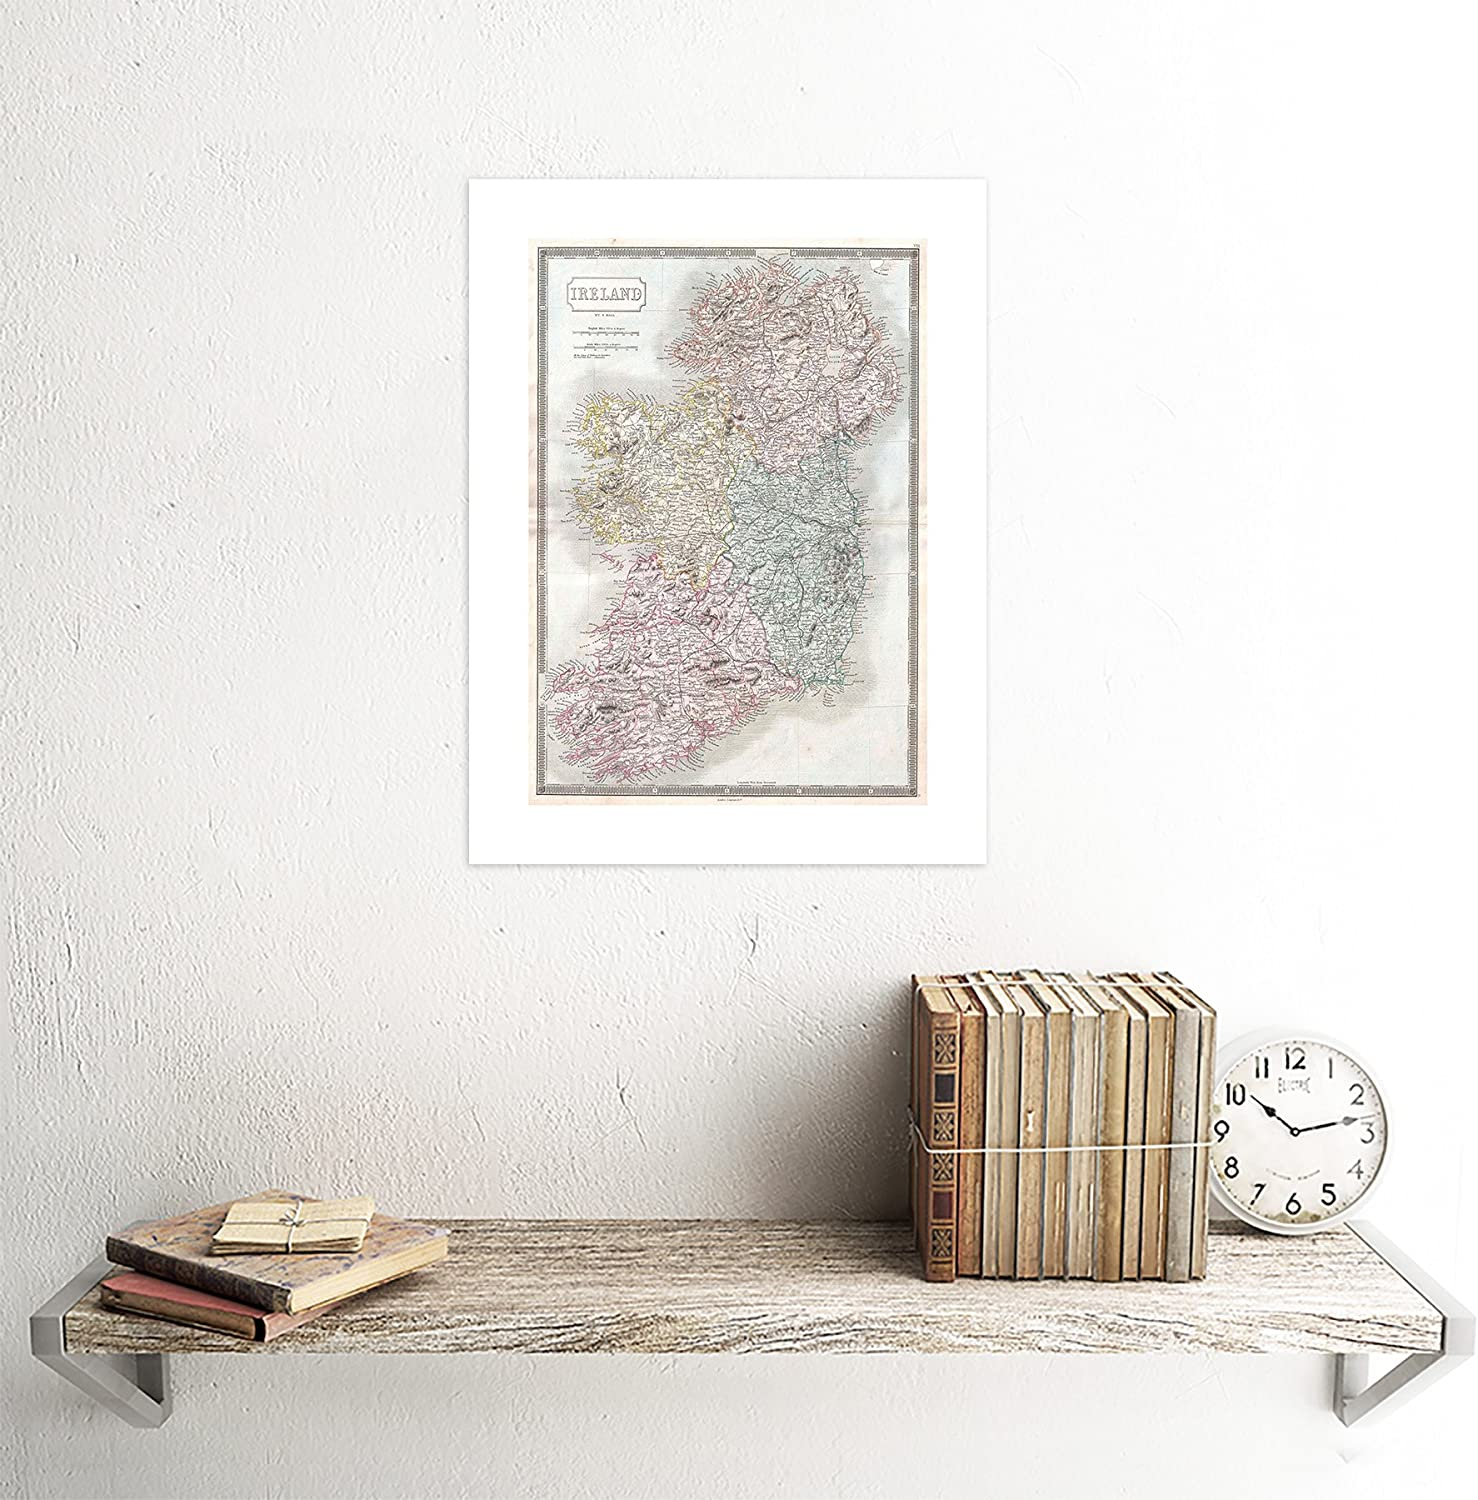 1850 Hall Map Ireland Print Frame Framed Picture Poster Mount Gift 12x16 Inch